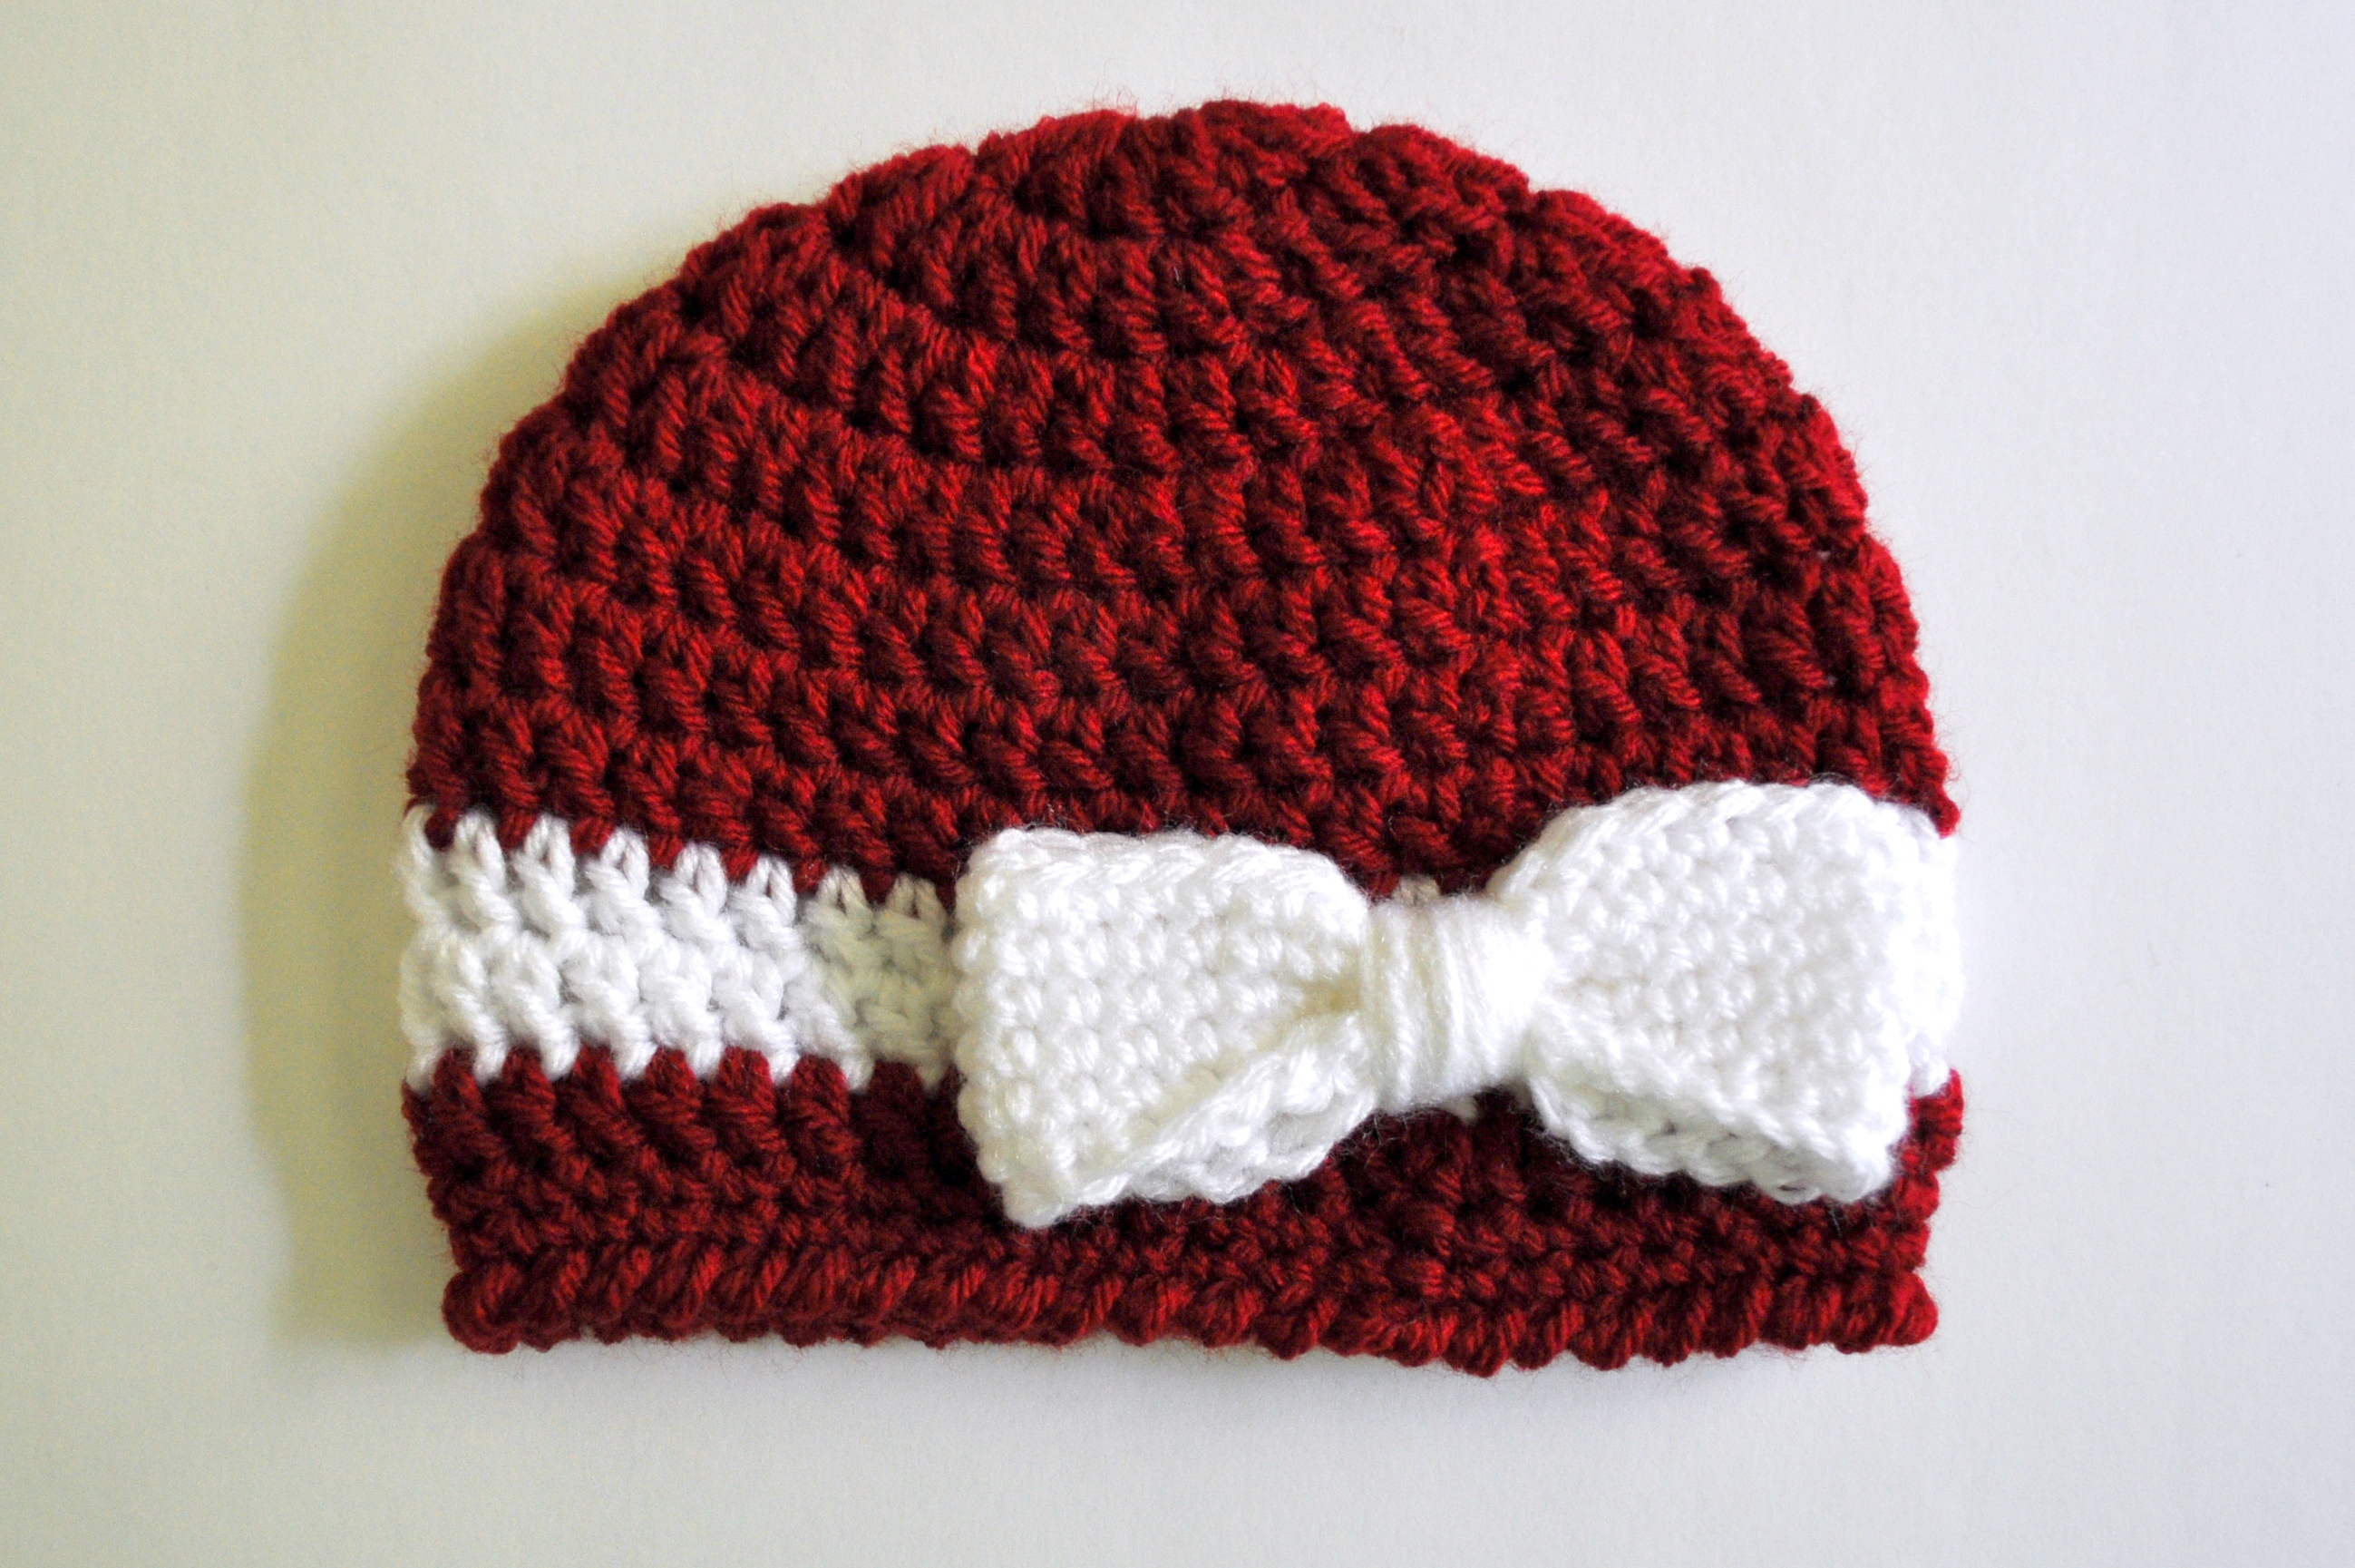 Free Crochet Patterns For Newborn Baby Hats : 25 Easy Crochet Bow Patterns Guide Patterns